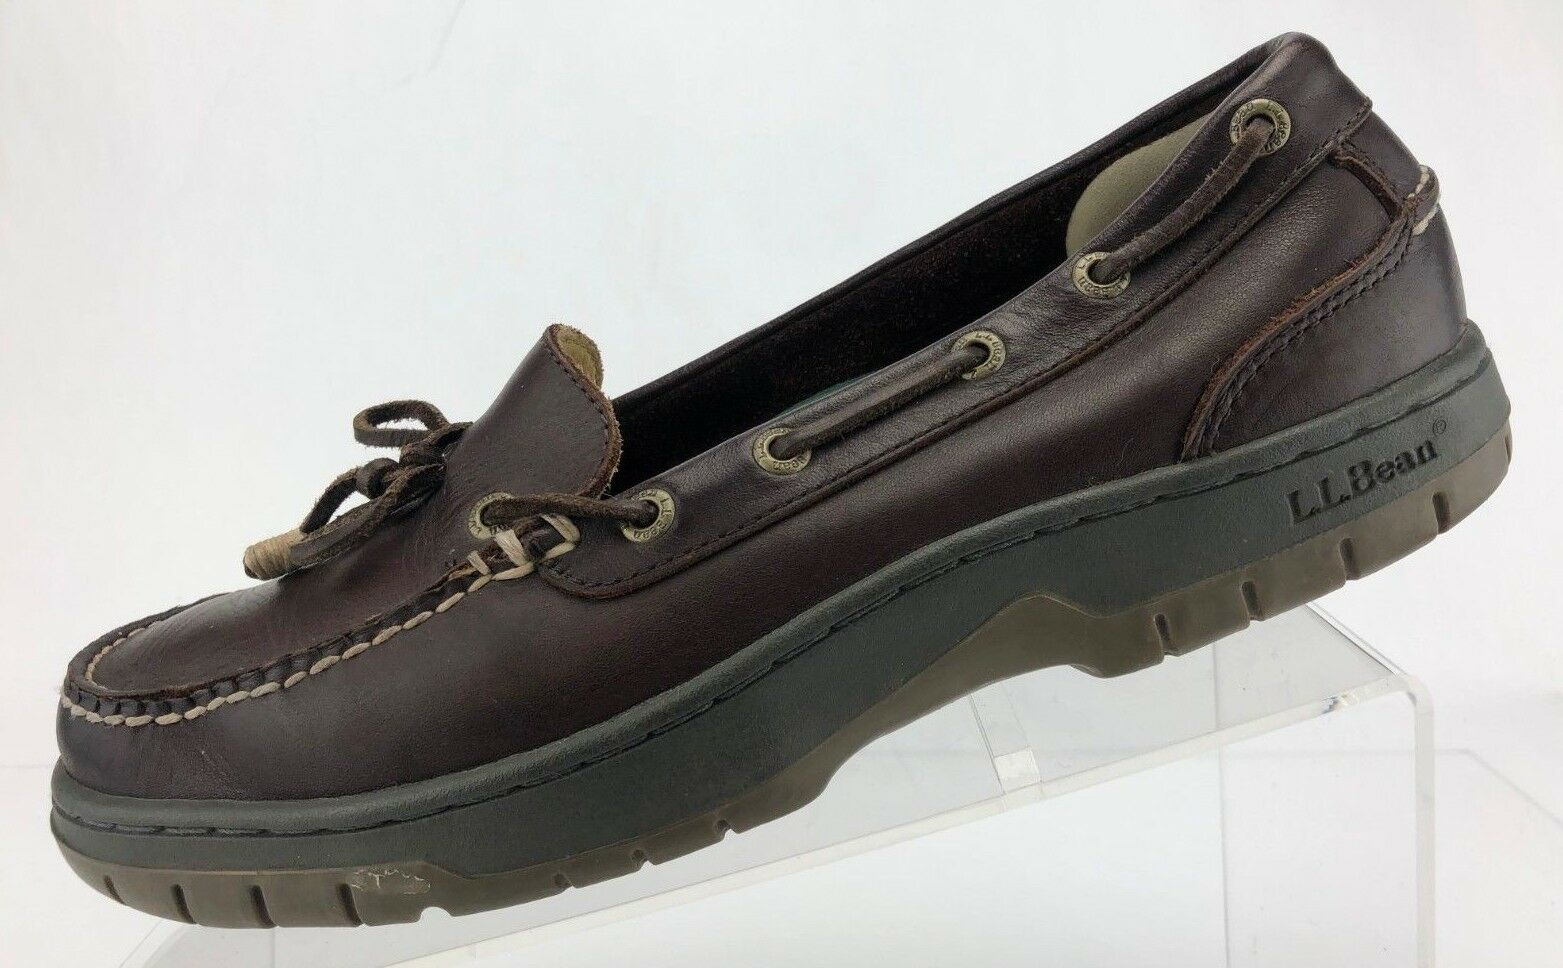 L.L. Bean Boat shoes Driving Moccasin Brown Leather Moc Toe Loafers Mens 8.5 M